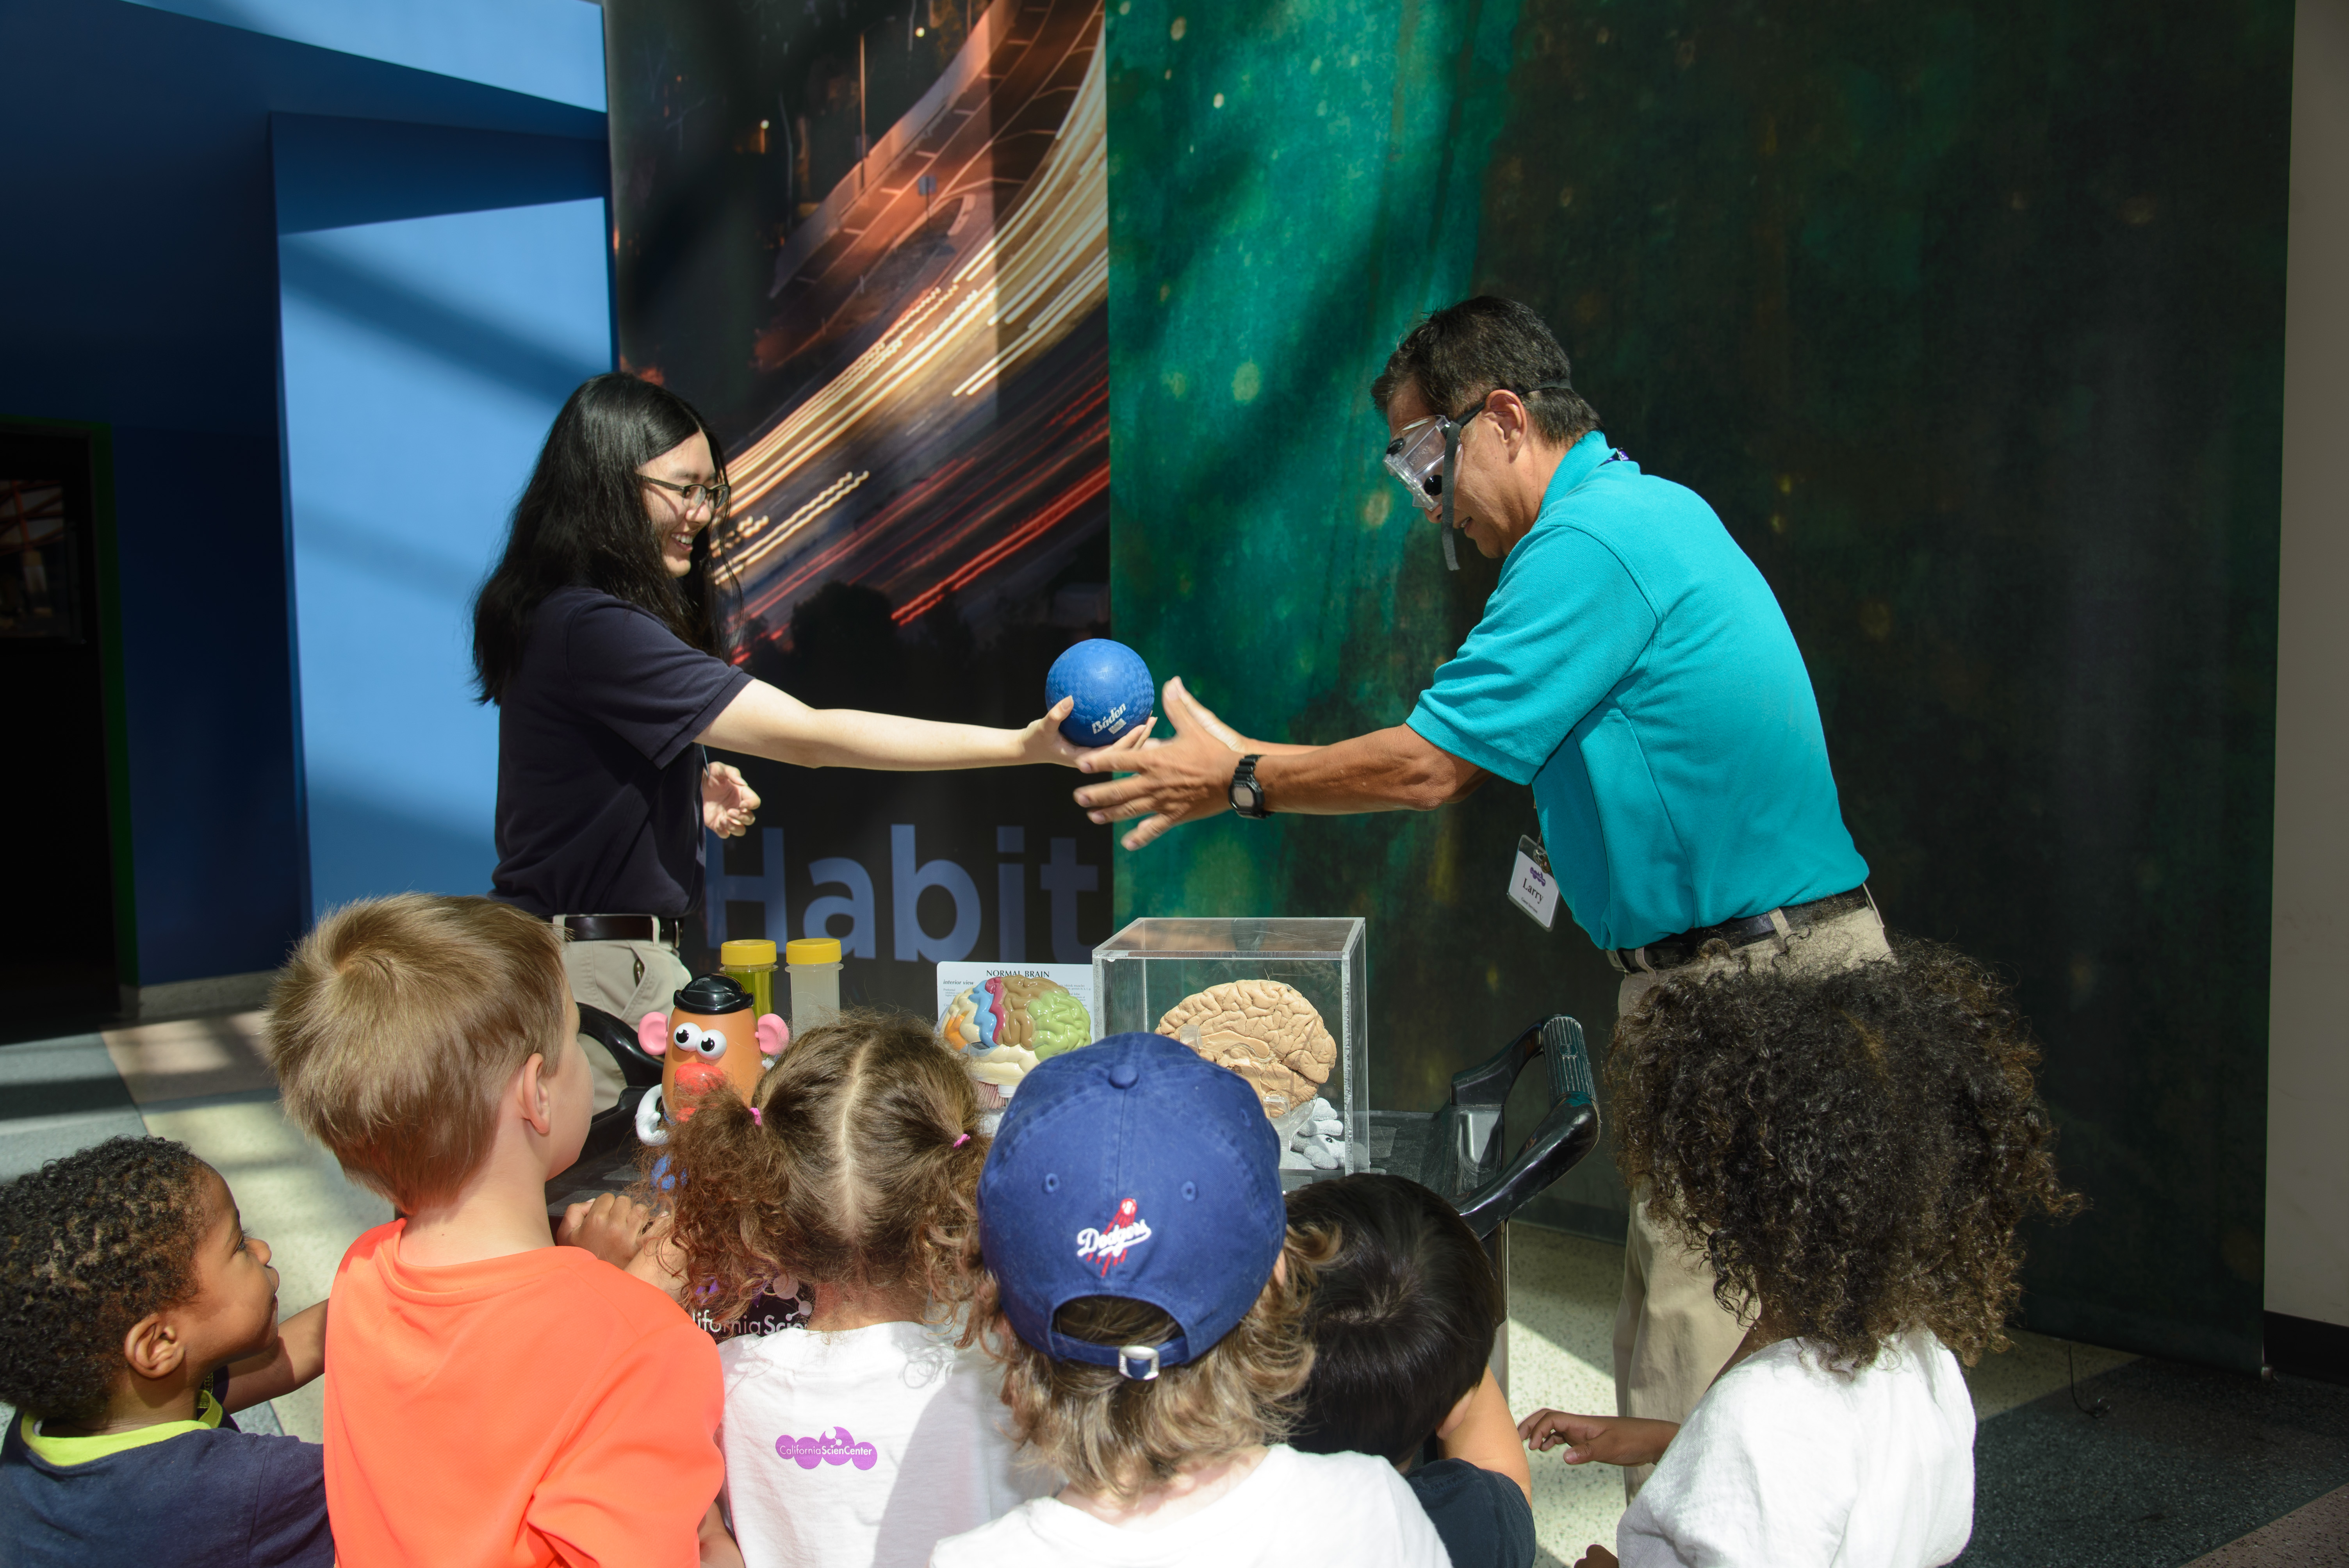 cation team member and Volunteer demonstrate science concept at a cart by passing each other a small blue rubber ball while group of kids watch